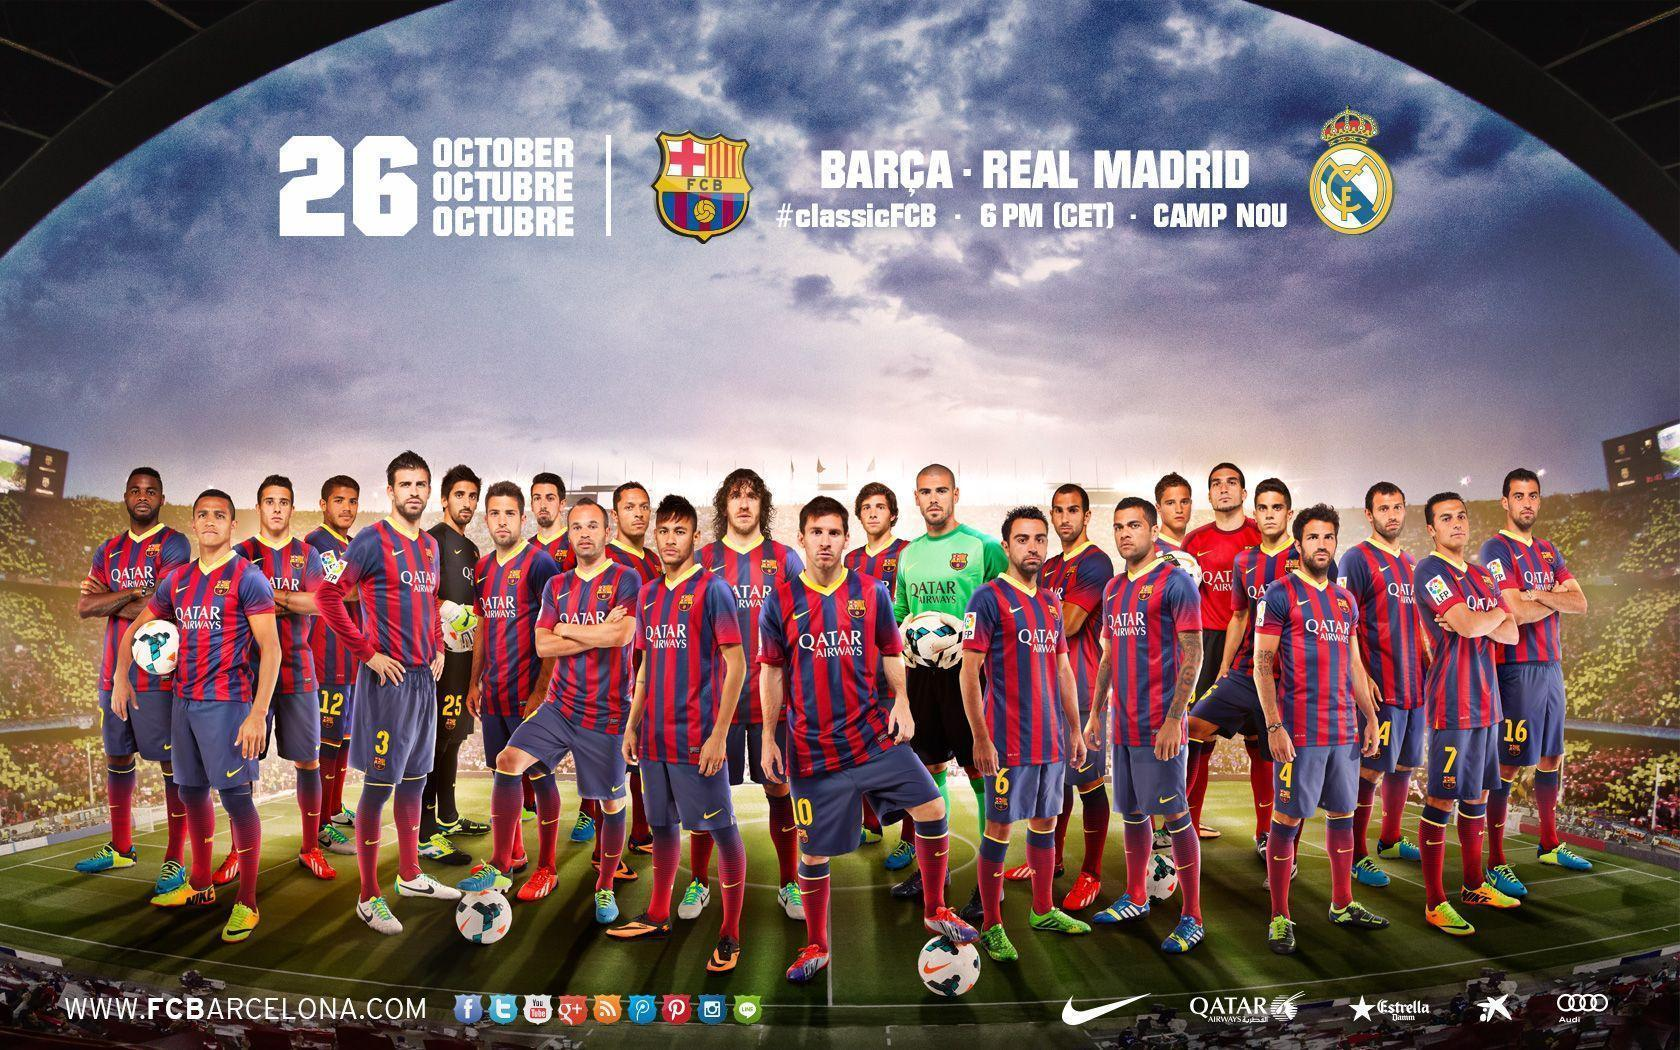 1000+ images about FC Barcelona on Pinterest | Logos, Messi and ...